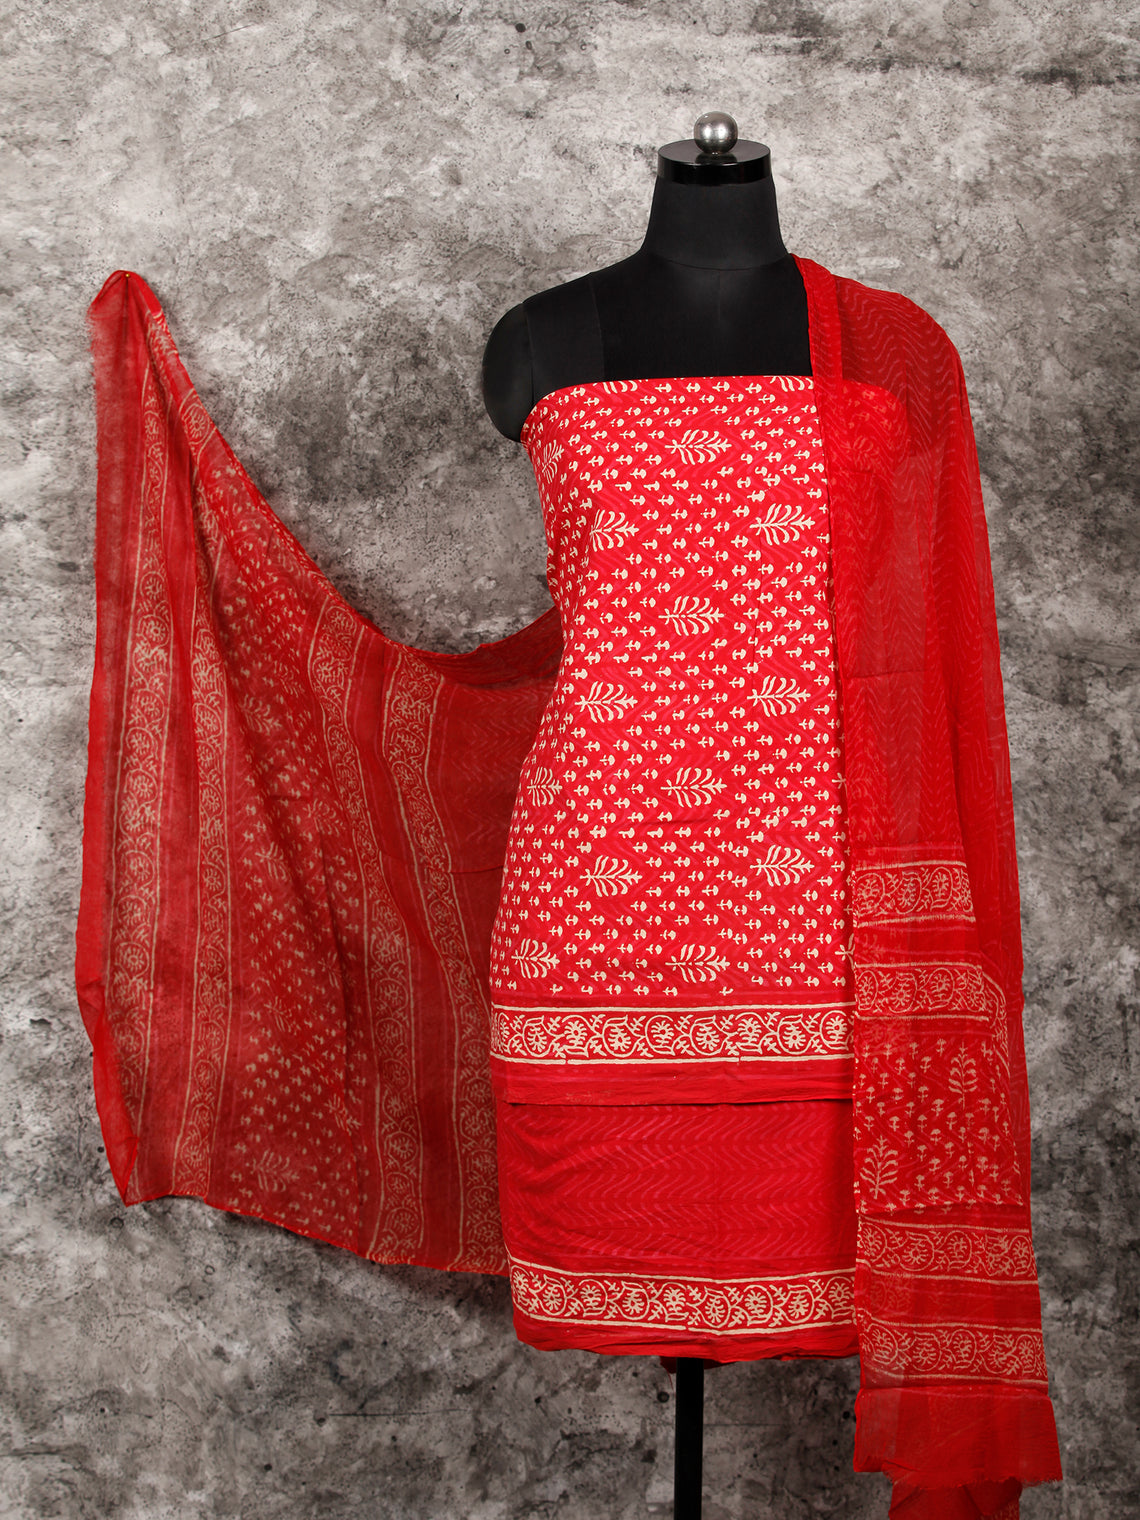 Red Beige Hand Block Printed Cotton Suit-Salwar Fabric With Chiffon Dupatta (Set of 3) - SU01HB366